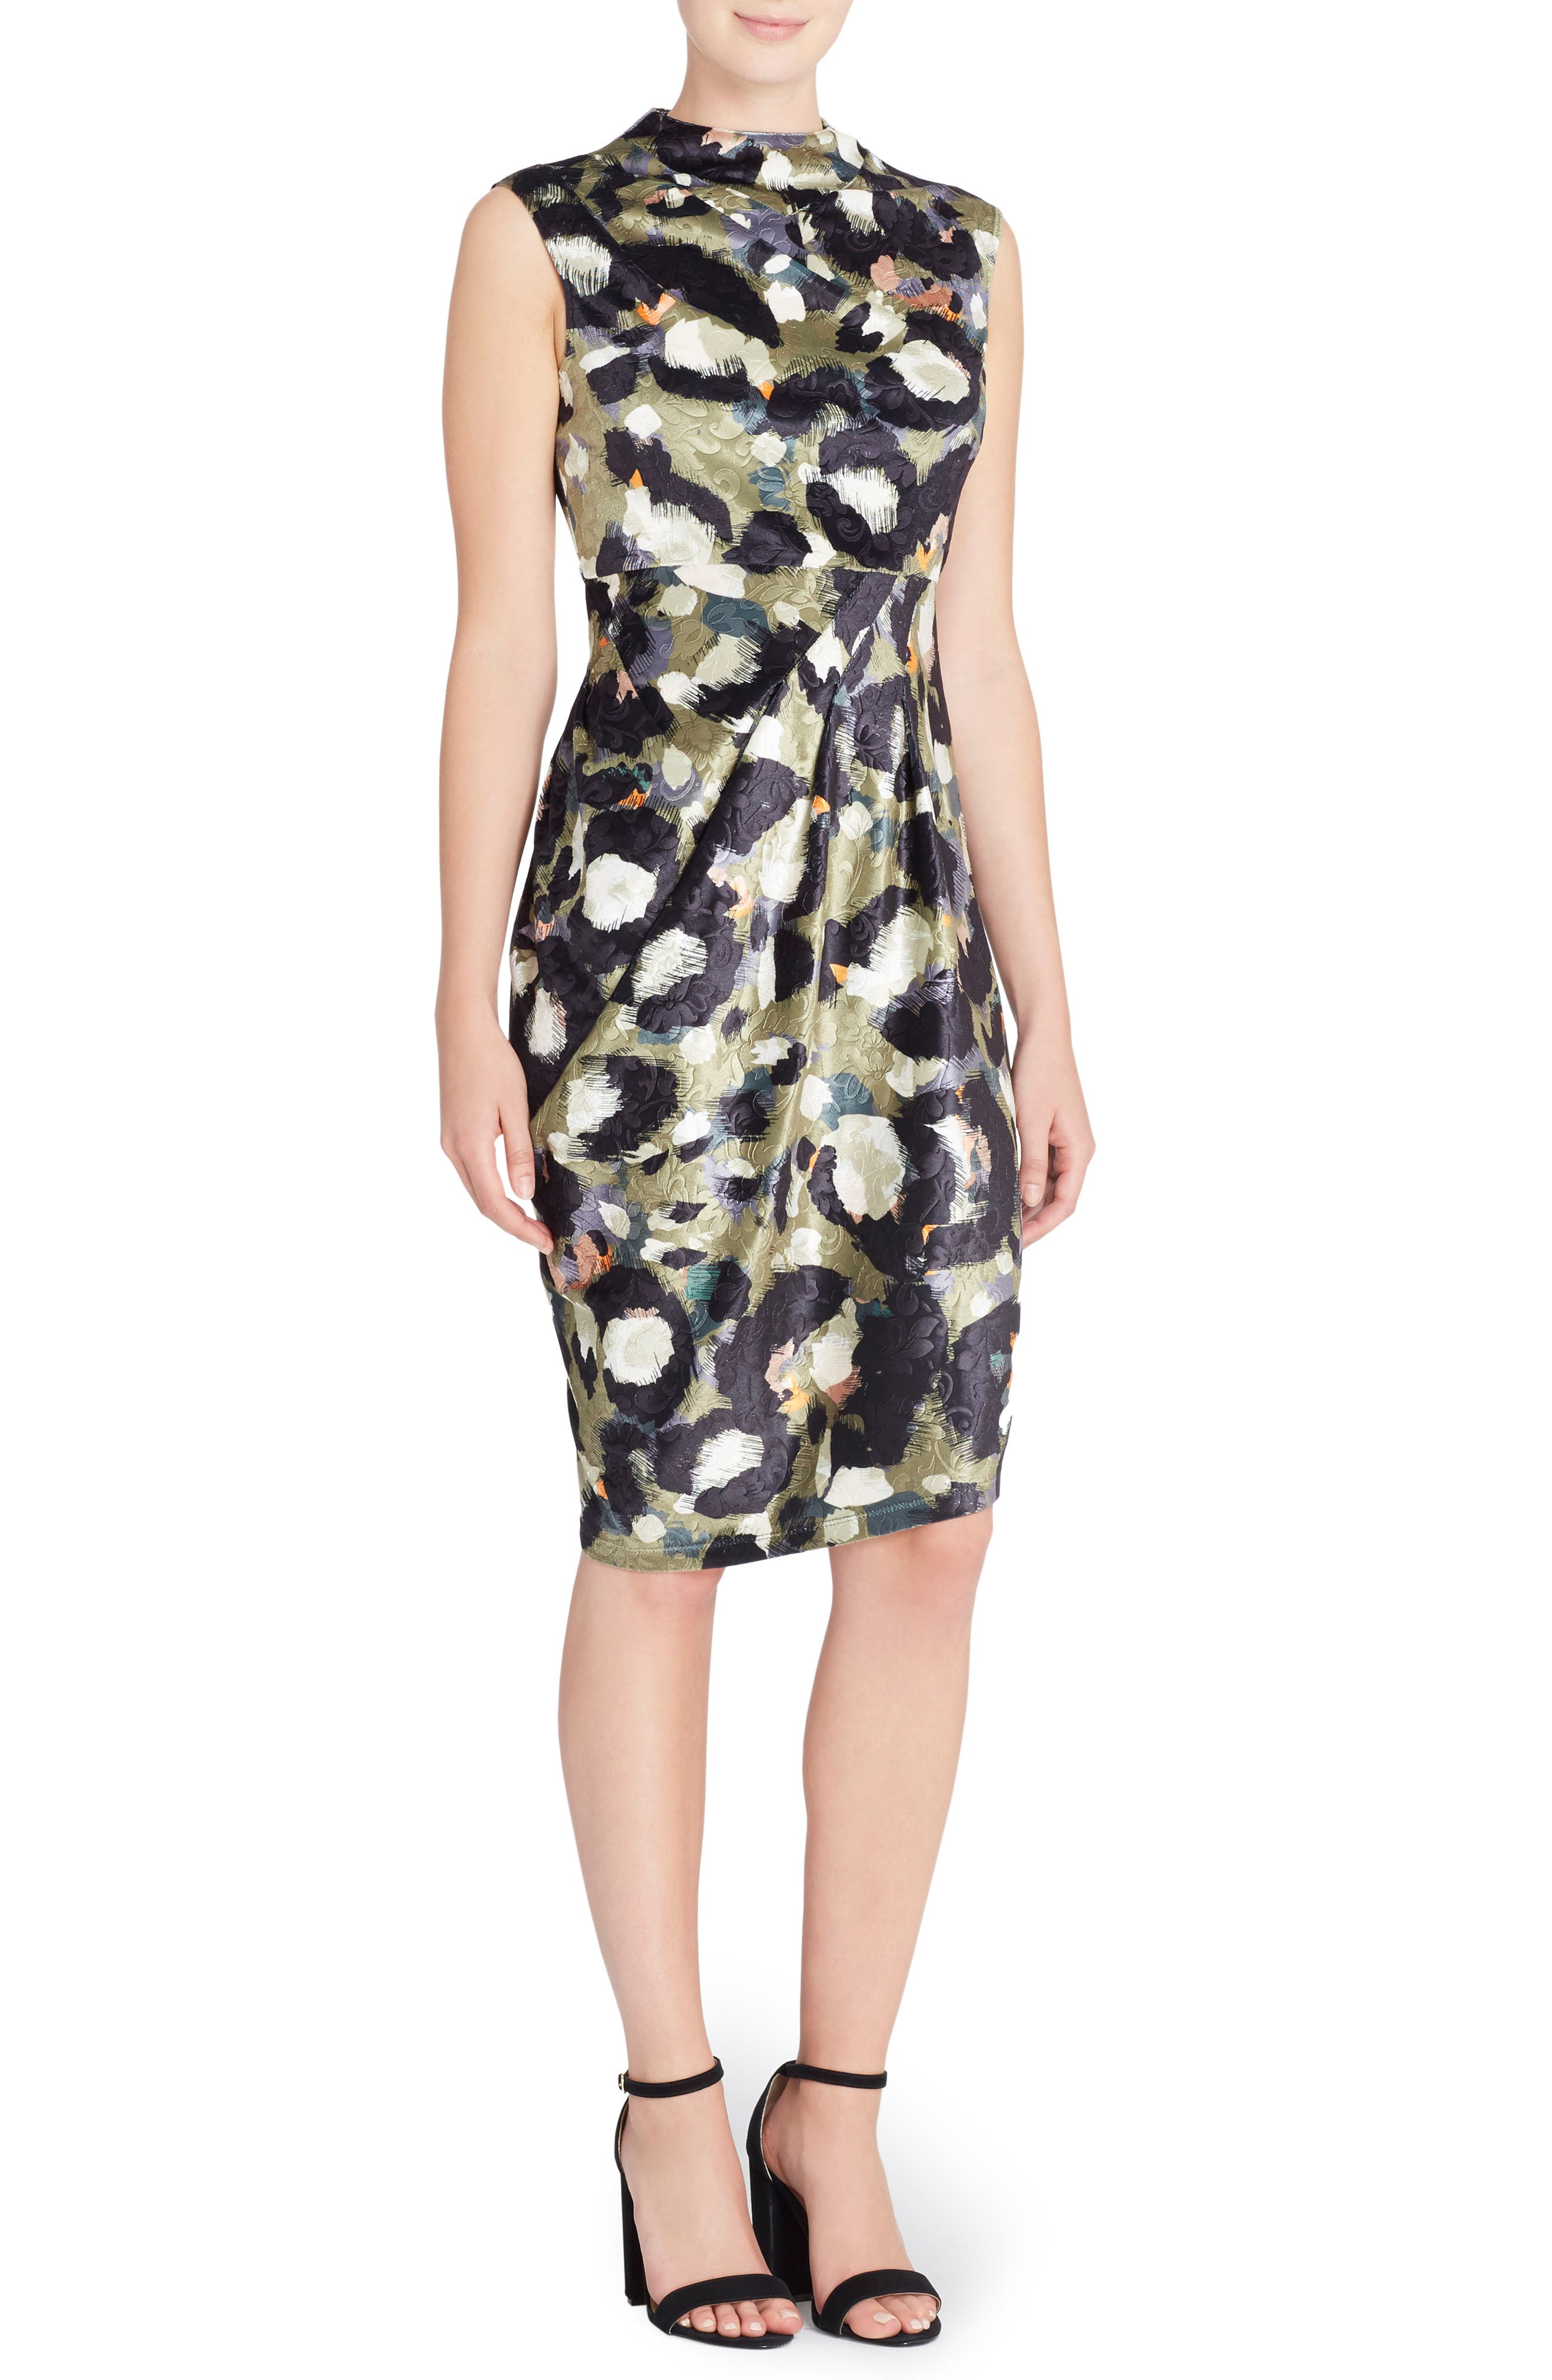 Alternate Image 1 Selected - Catherine Catherine Malandrino Arlene Floral Jacquard Sheath Dress